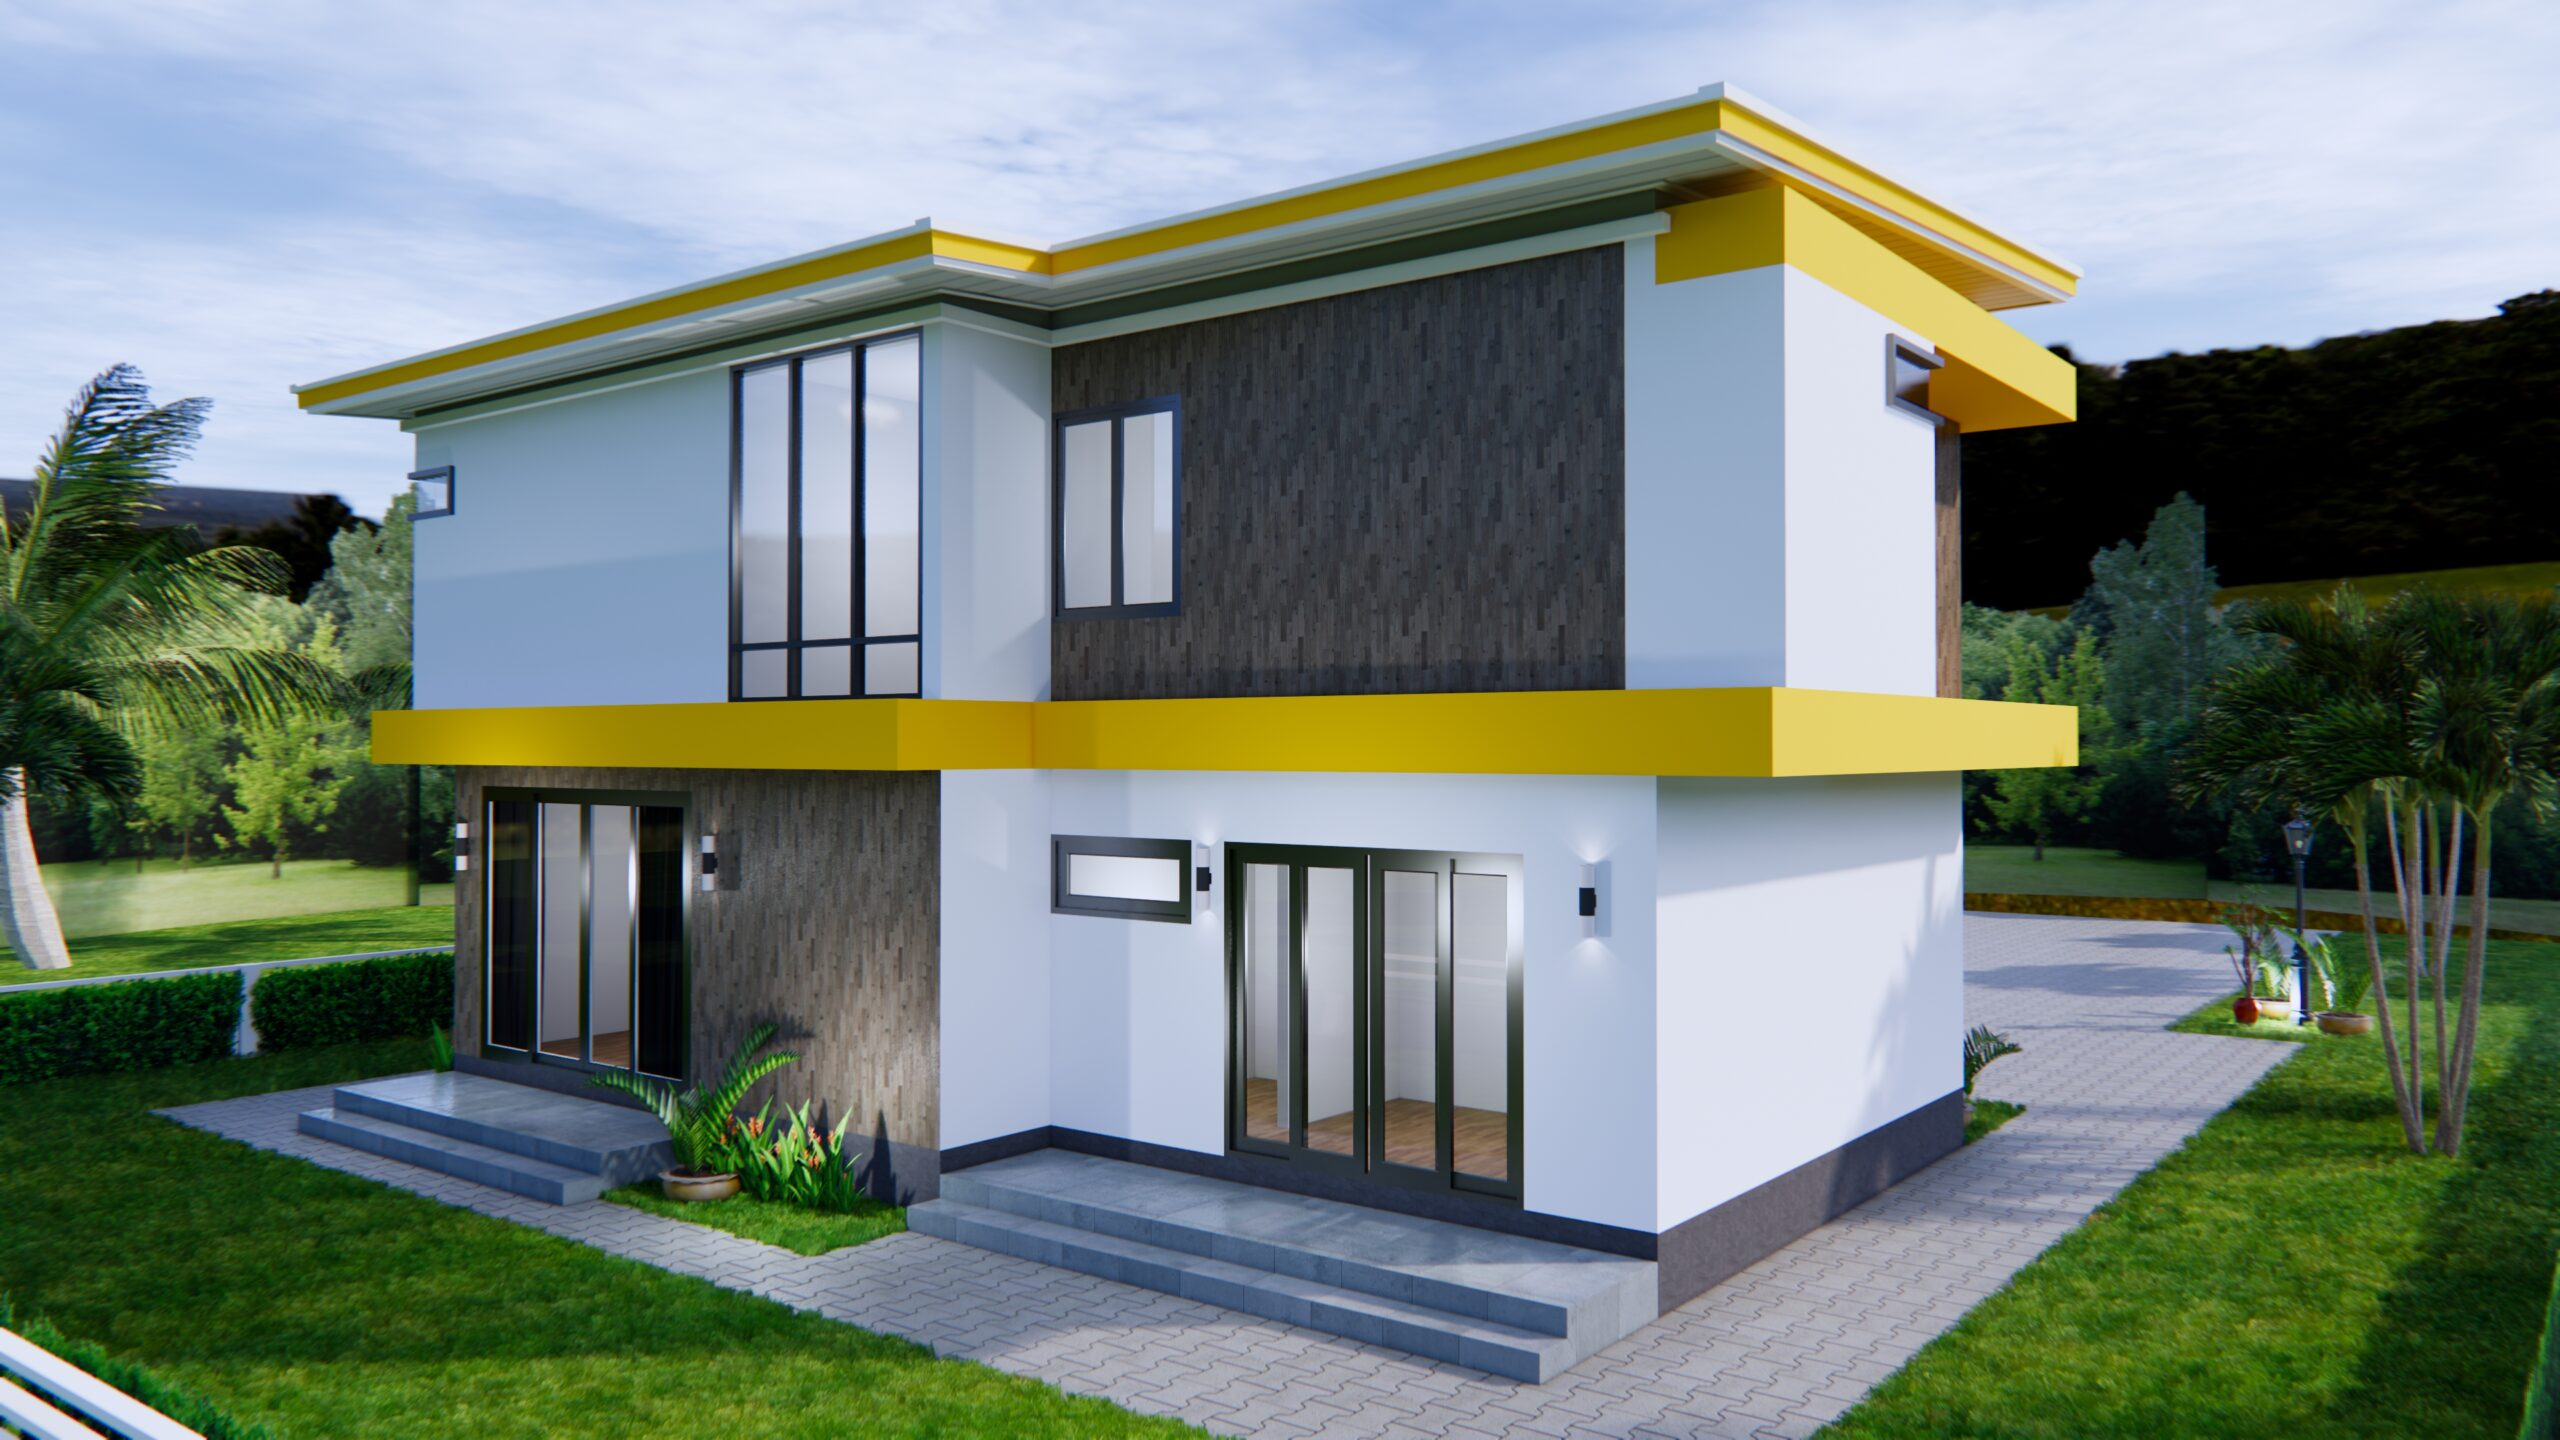 House Design 12.4x11 Meter 41x35 Feet 4 Beds 6